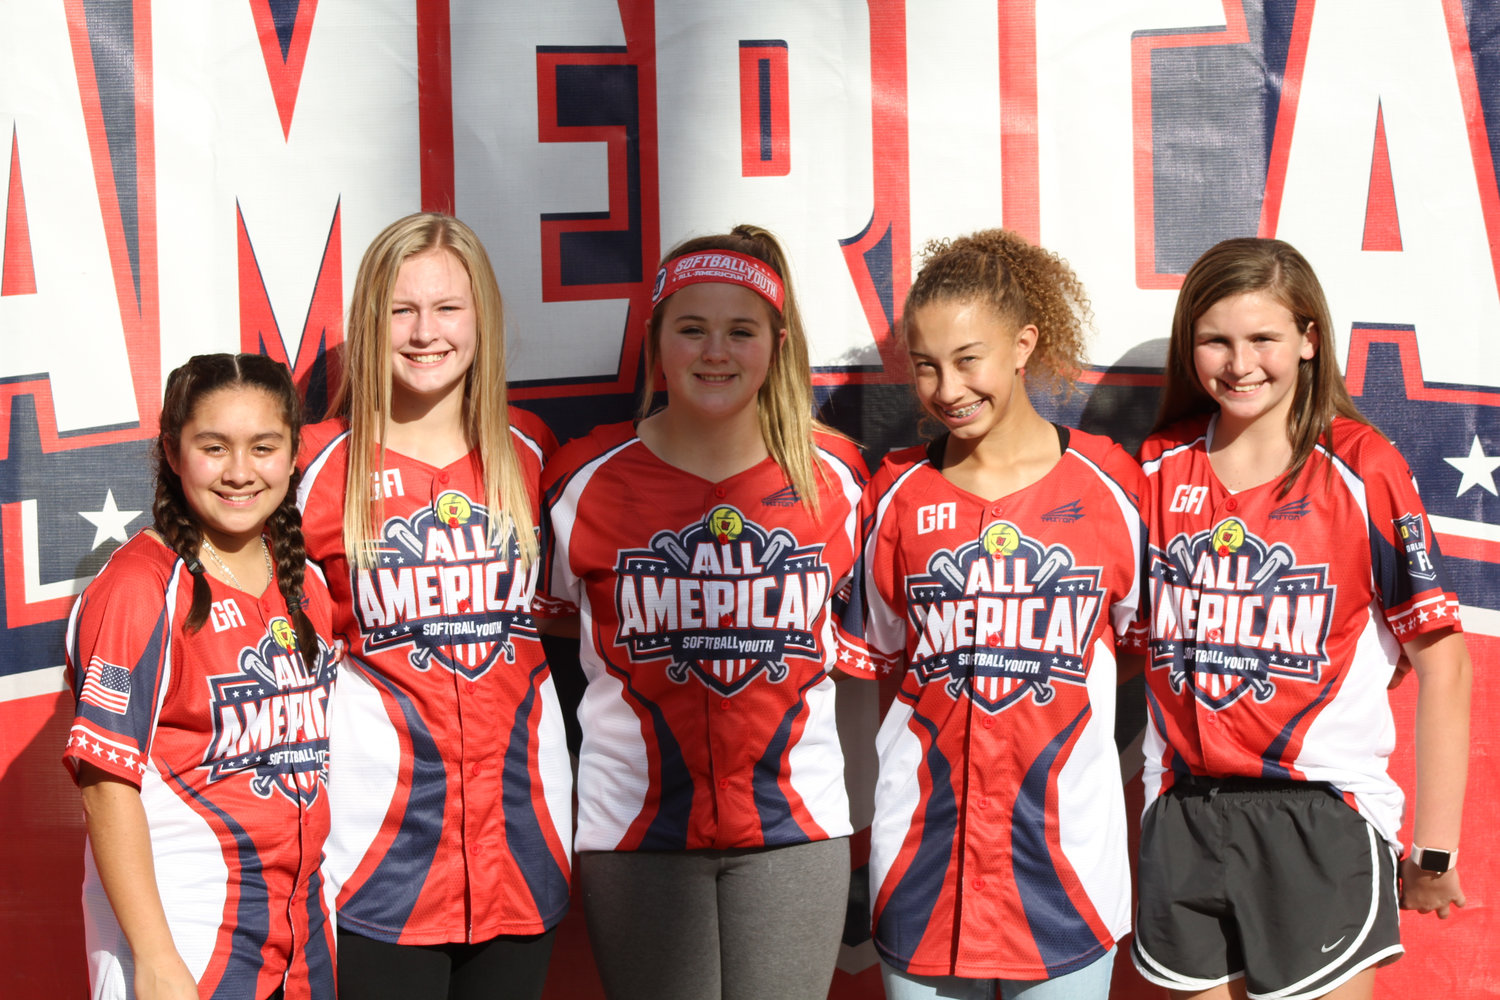 Five athletes from the Diamond Devils 12U travel fastpitch softball team, based out of Adairsville, competed in the 2019 Youth Softball All-American Games from Jan. 2-5 in Orlando, Florida. Four of the five girls are students at Adairsville Middle School, while the other attends Red Bud Middle School in Calhoun. Pictured from left are Gabi Becerra, Peyton Dorn, Rebecca Tippett, Alissa Winters and Sadie Raughton.